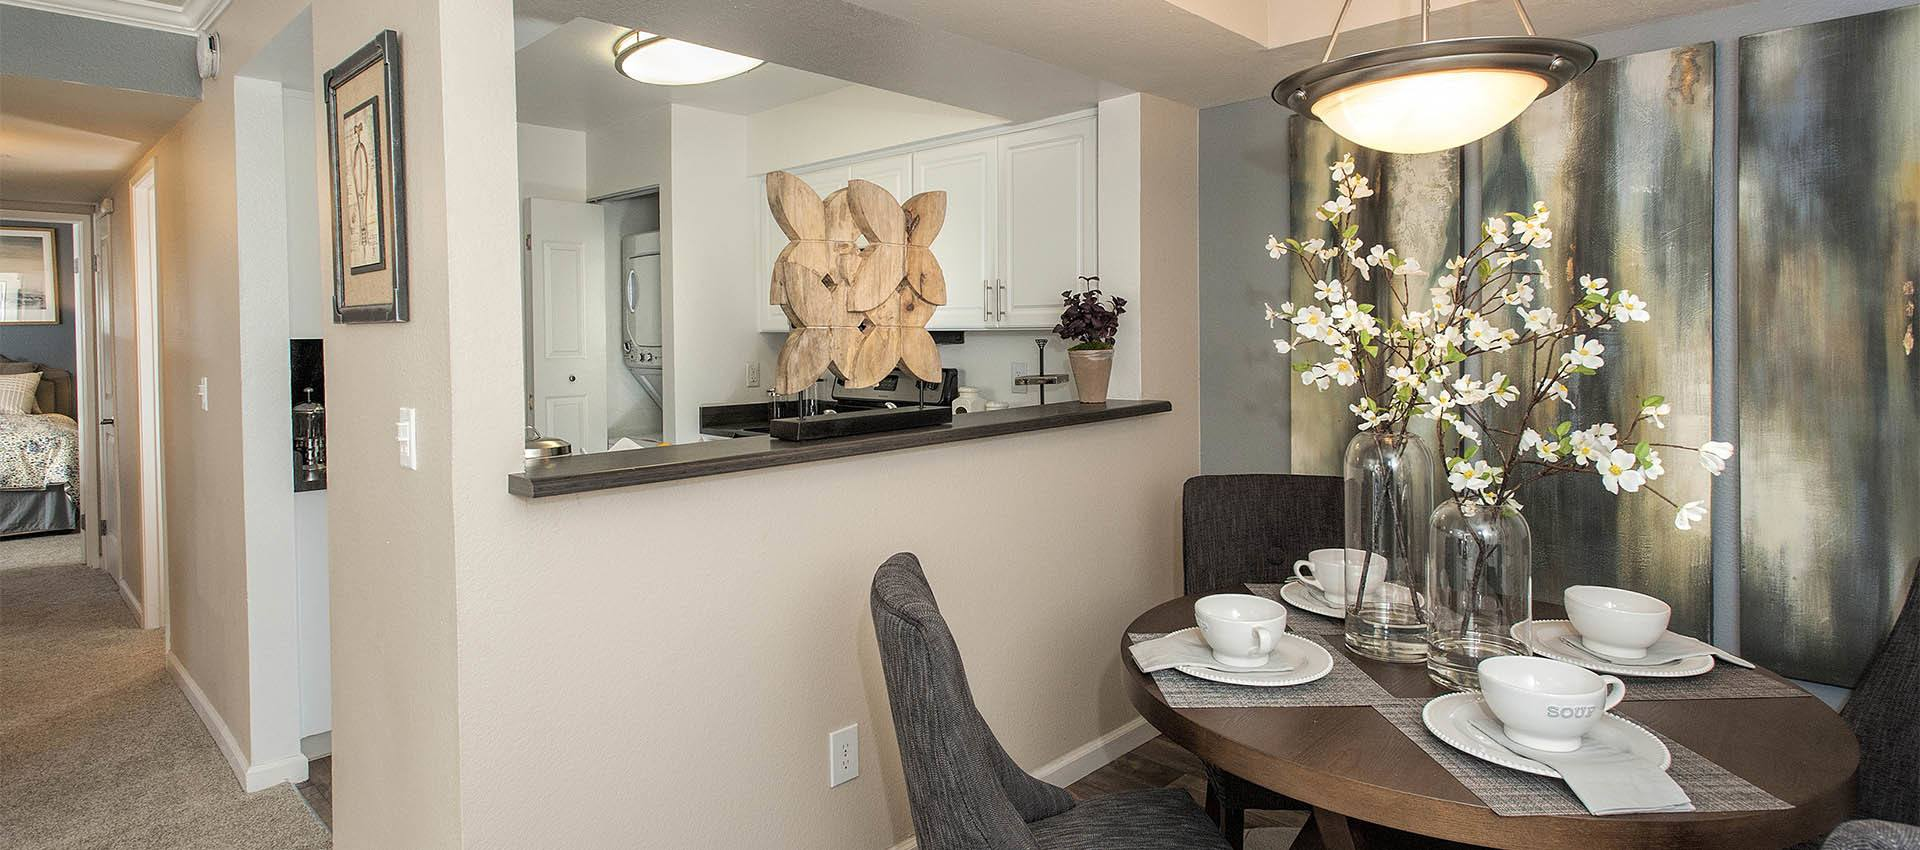 Spacious Floorplans at Mill Springs Park Apartment Homes in Livermore